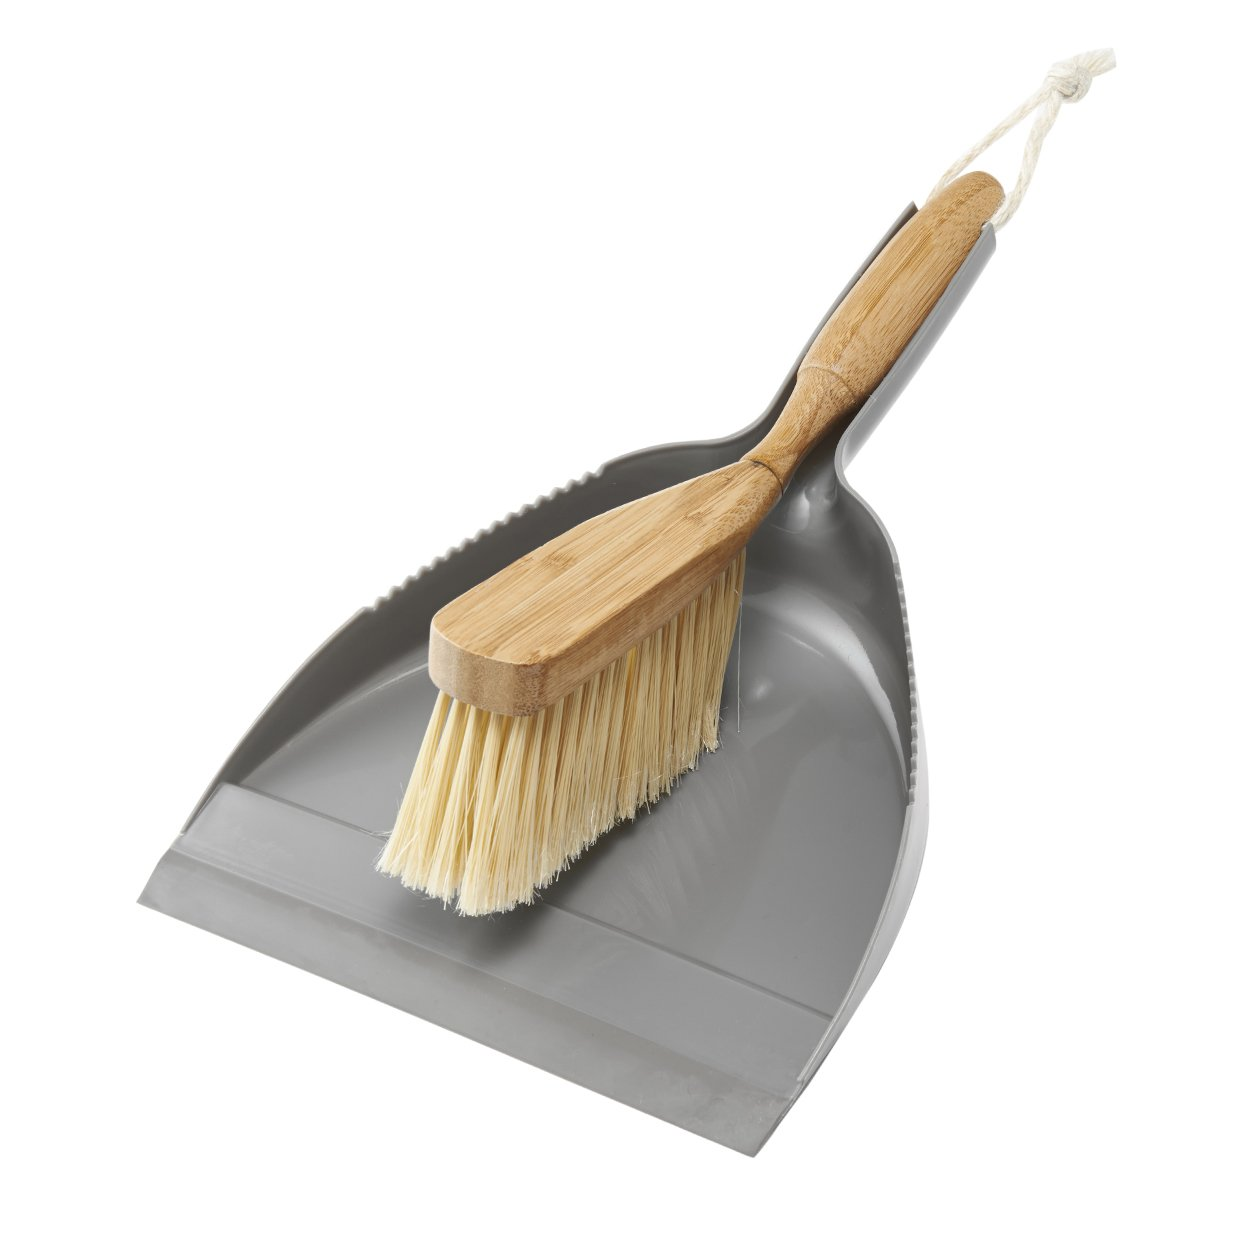 Addis Dustpan & Bamboo Hand Brush Set, Grey & Natural, Wood, 35 x 22 x 6 cm 517677